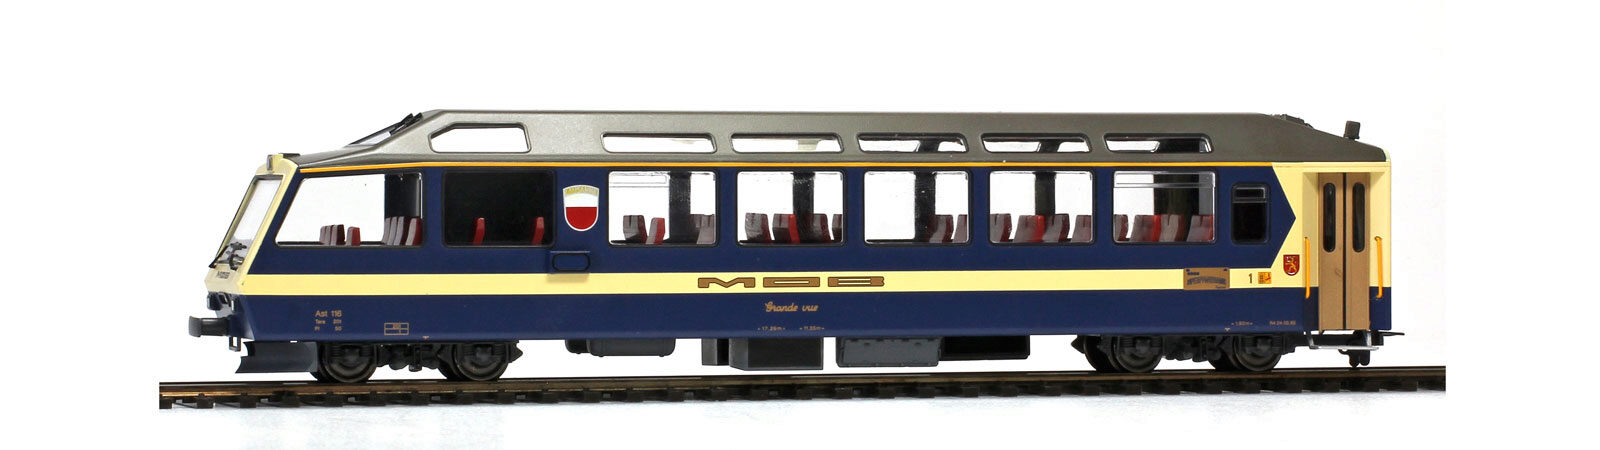 "Bemo 3297306 MOB Arst 116 ""Superpanoramic Express"" Steuerwagen"